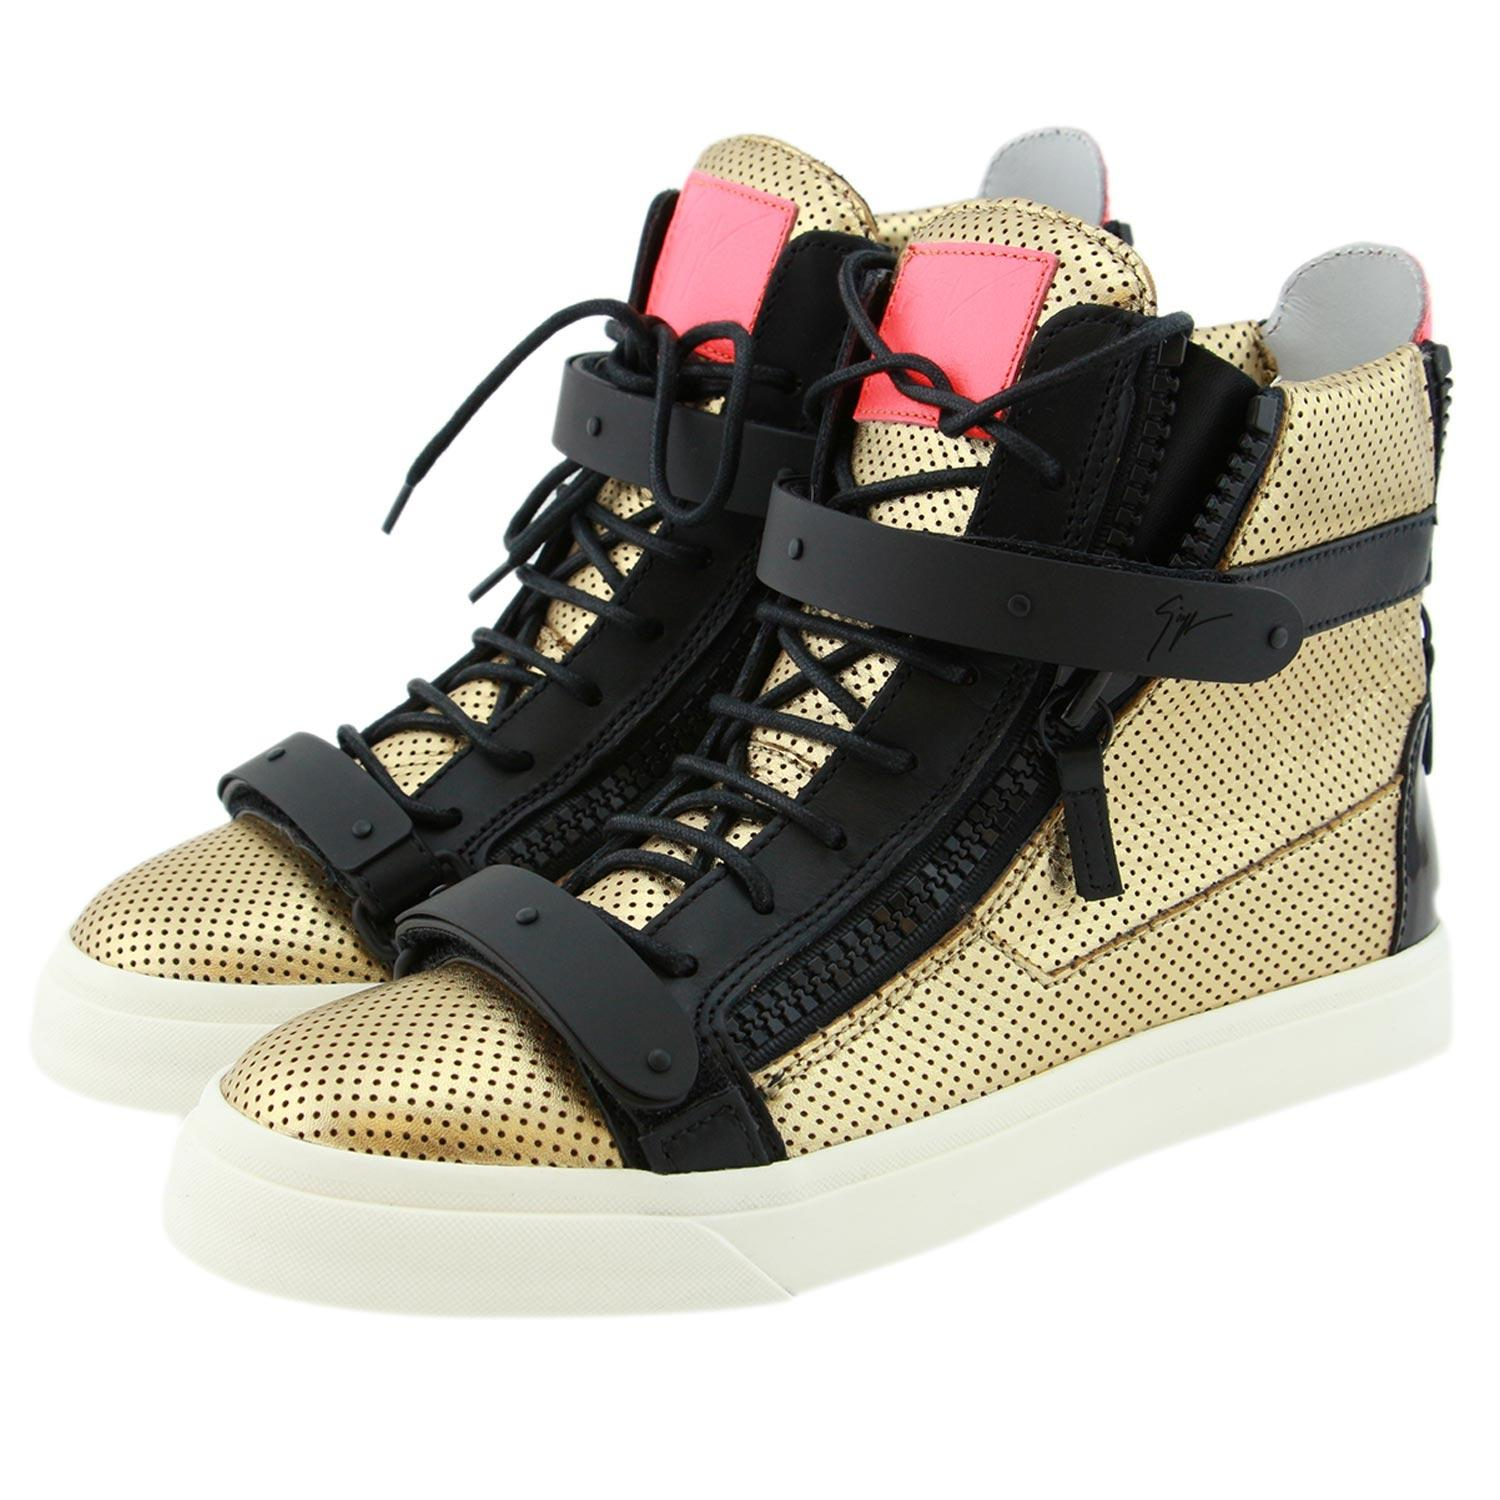 Giuseppe Zanotti Black & Gold New Women High-top Dual Strap Perforated Leather Sneakers Eu39 Sneakers Size US 9 Regular (M, B)